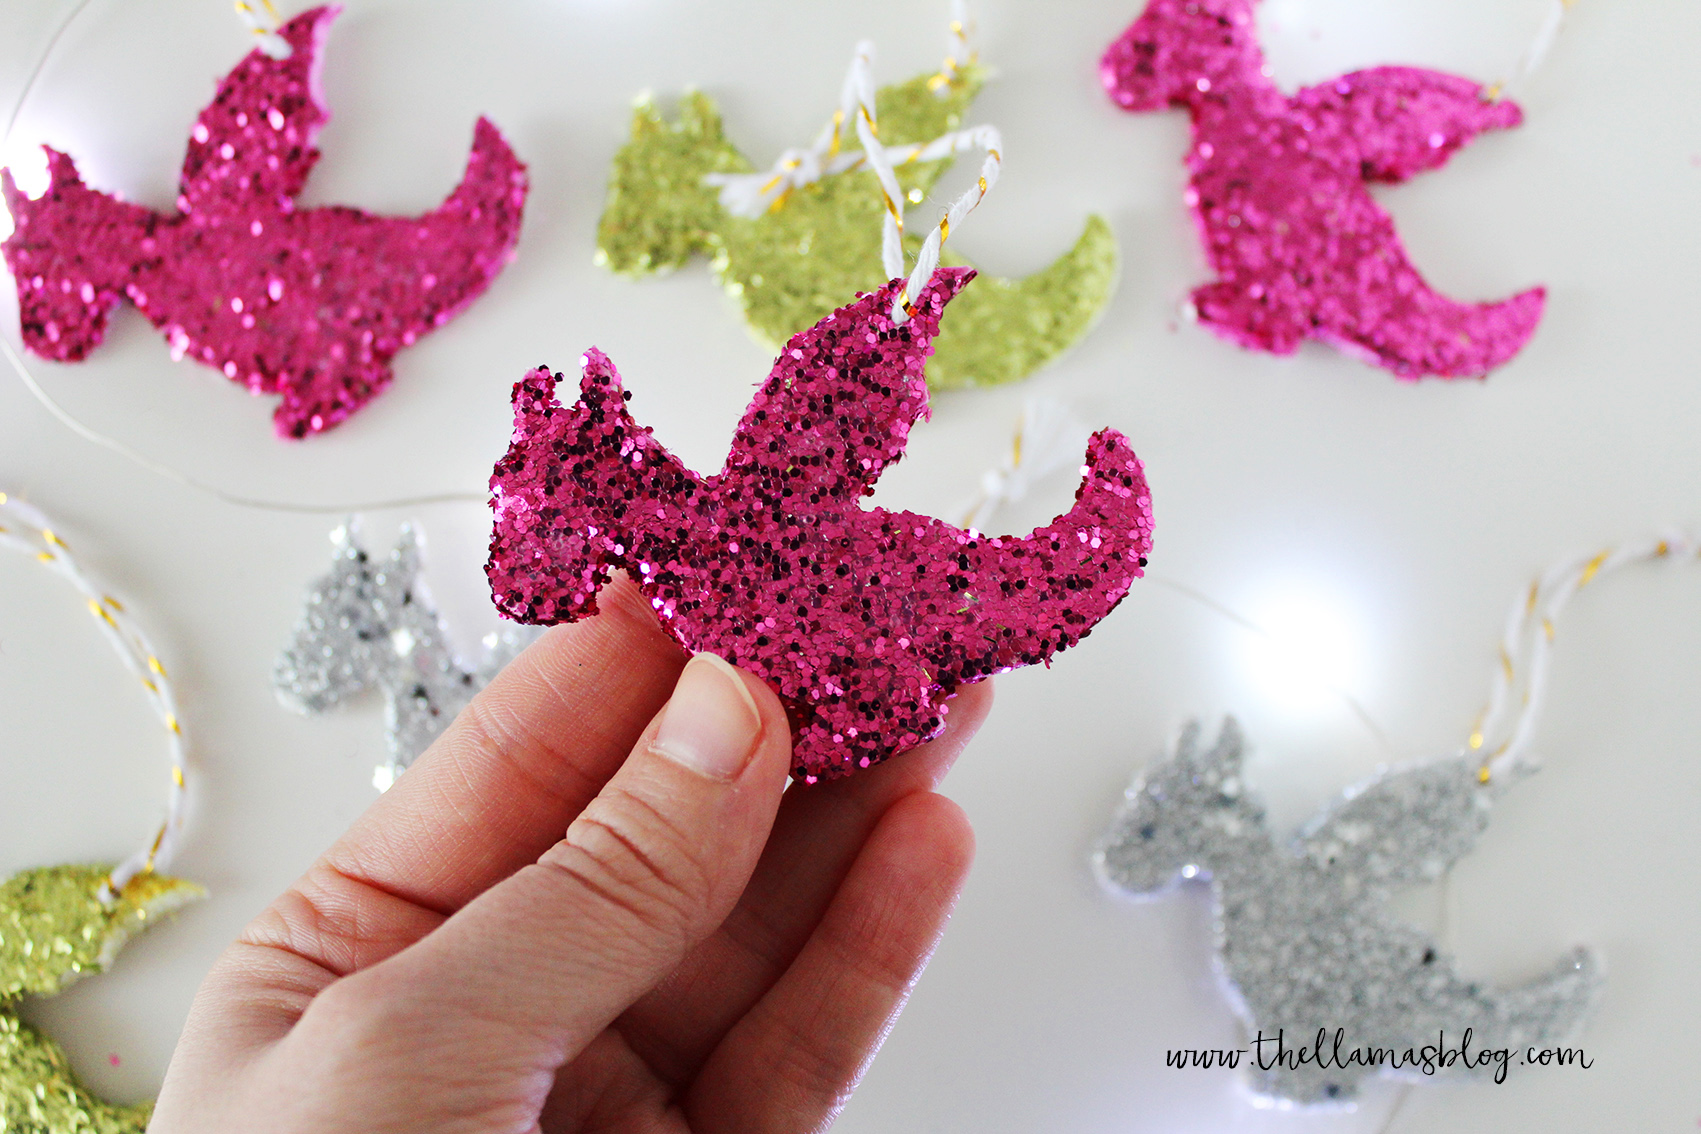 thellamas_DIY_sparkling_dragon_decorations_hand3_the_llamas_blog